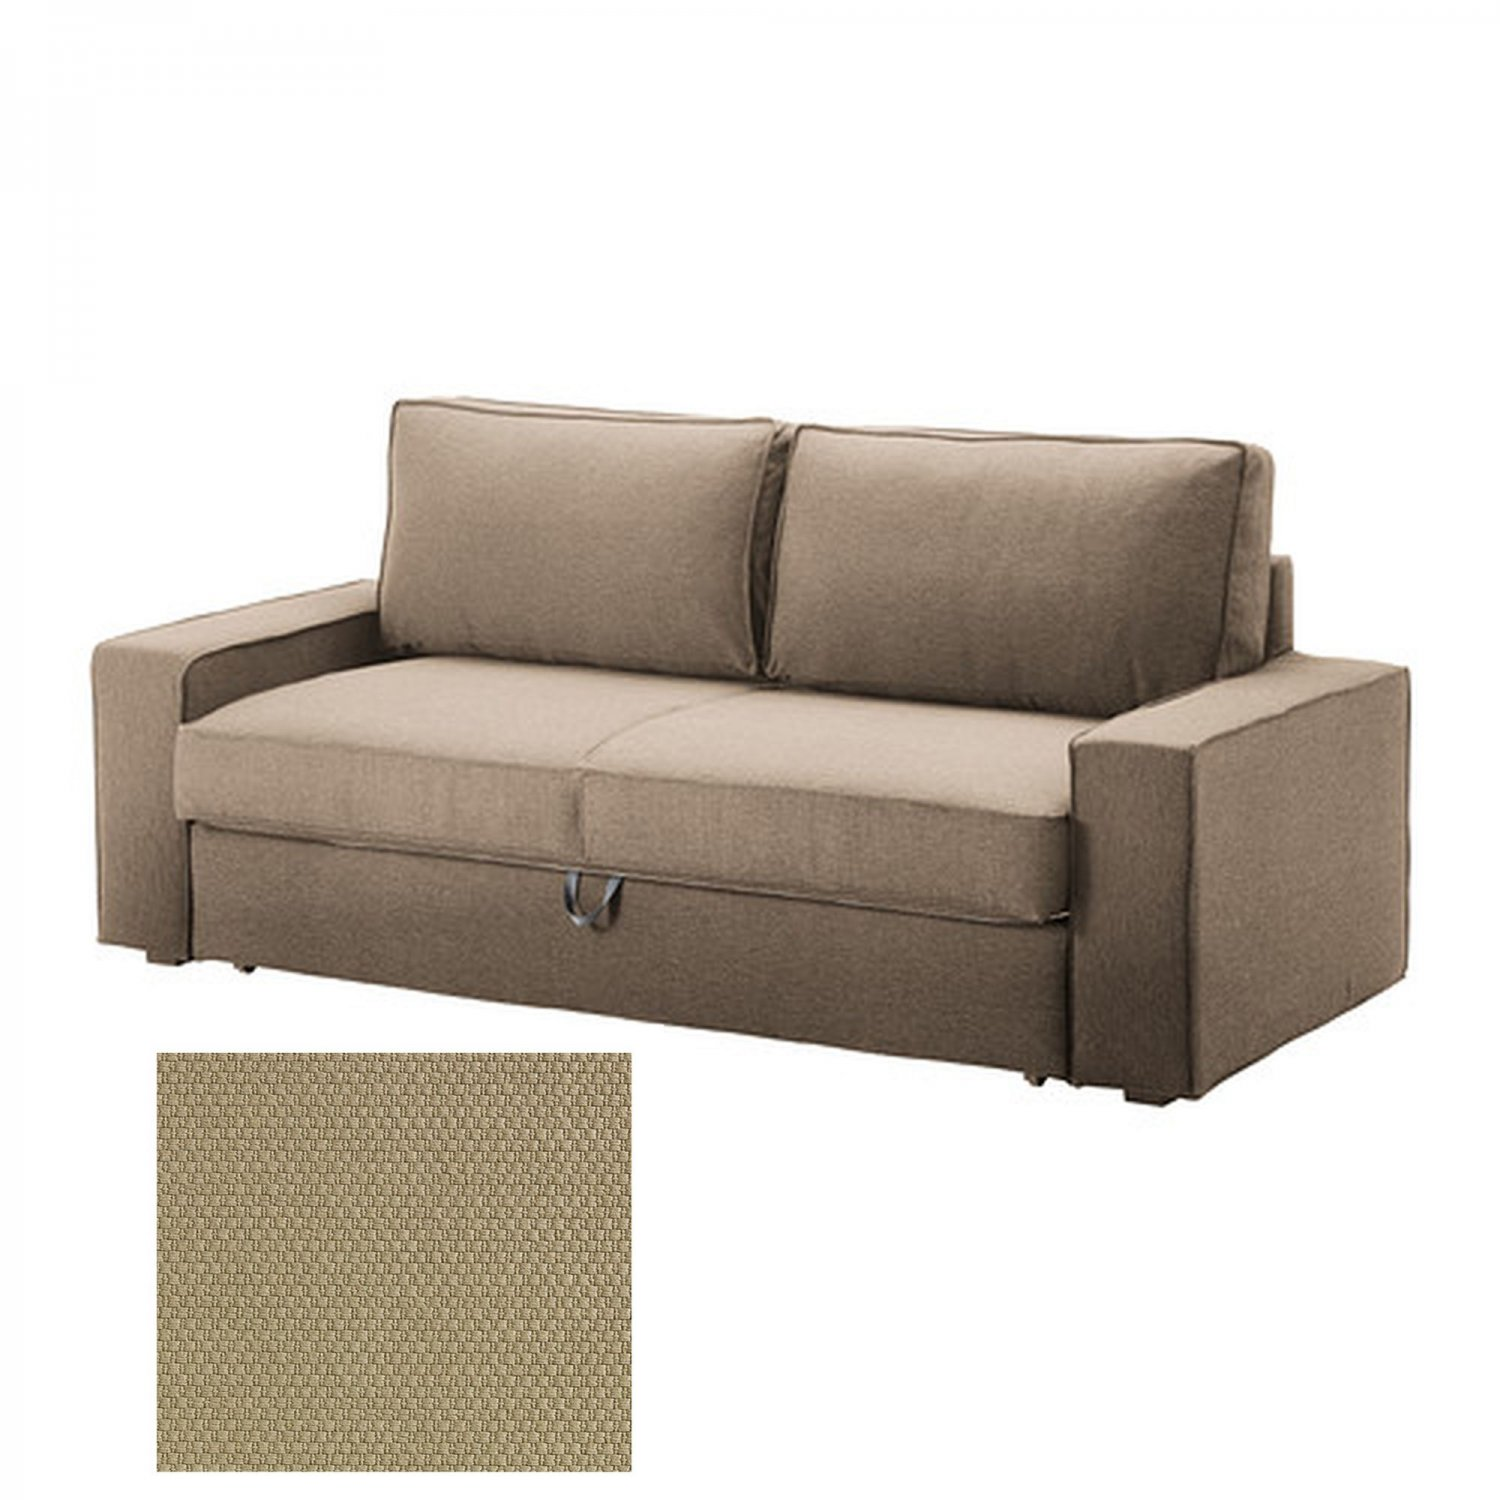 Ikea 3 Seater Sofa Bed Cover Velcromag